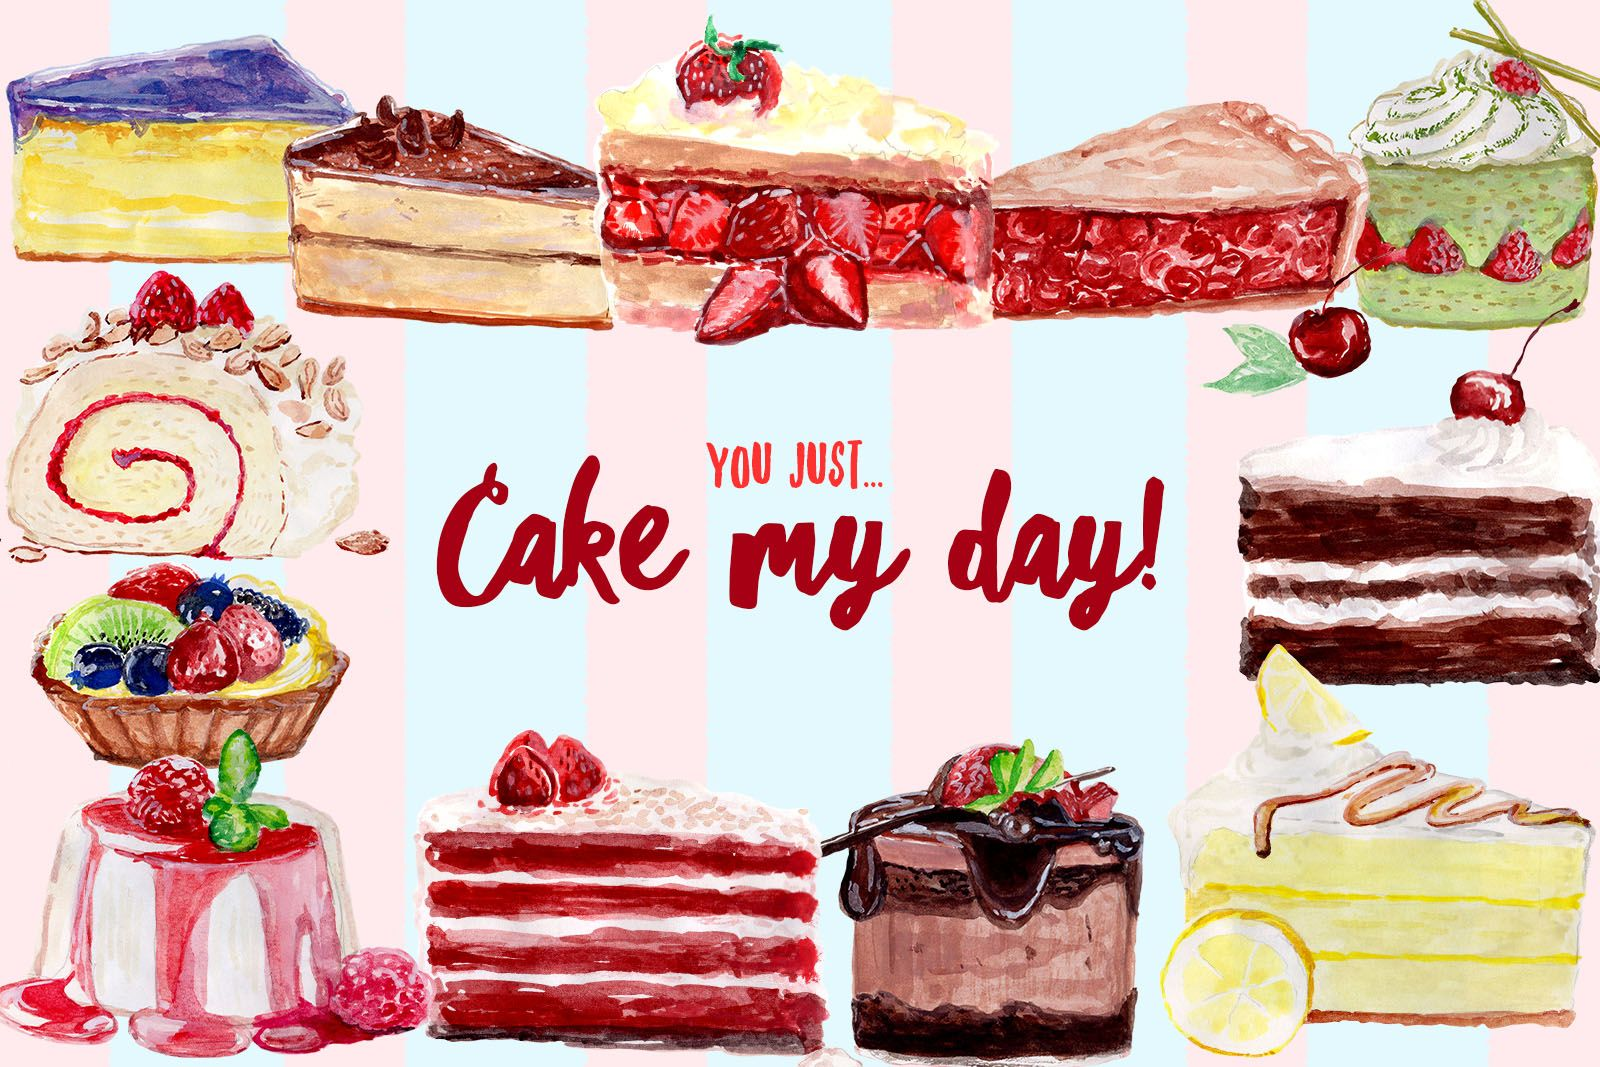 hight resolution of free watercolor cake cliparts volumes cifsdata2 mom design freebies free design resources fdr cake my day free watercolor clipart